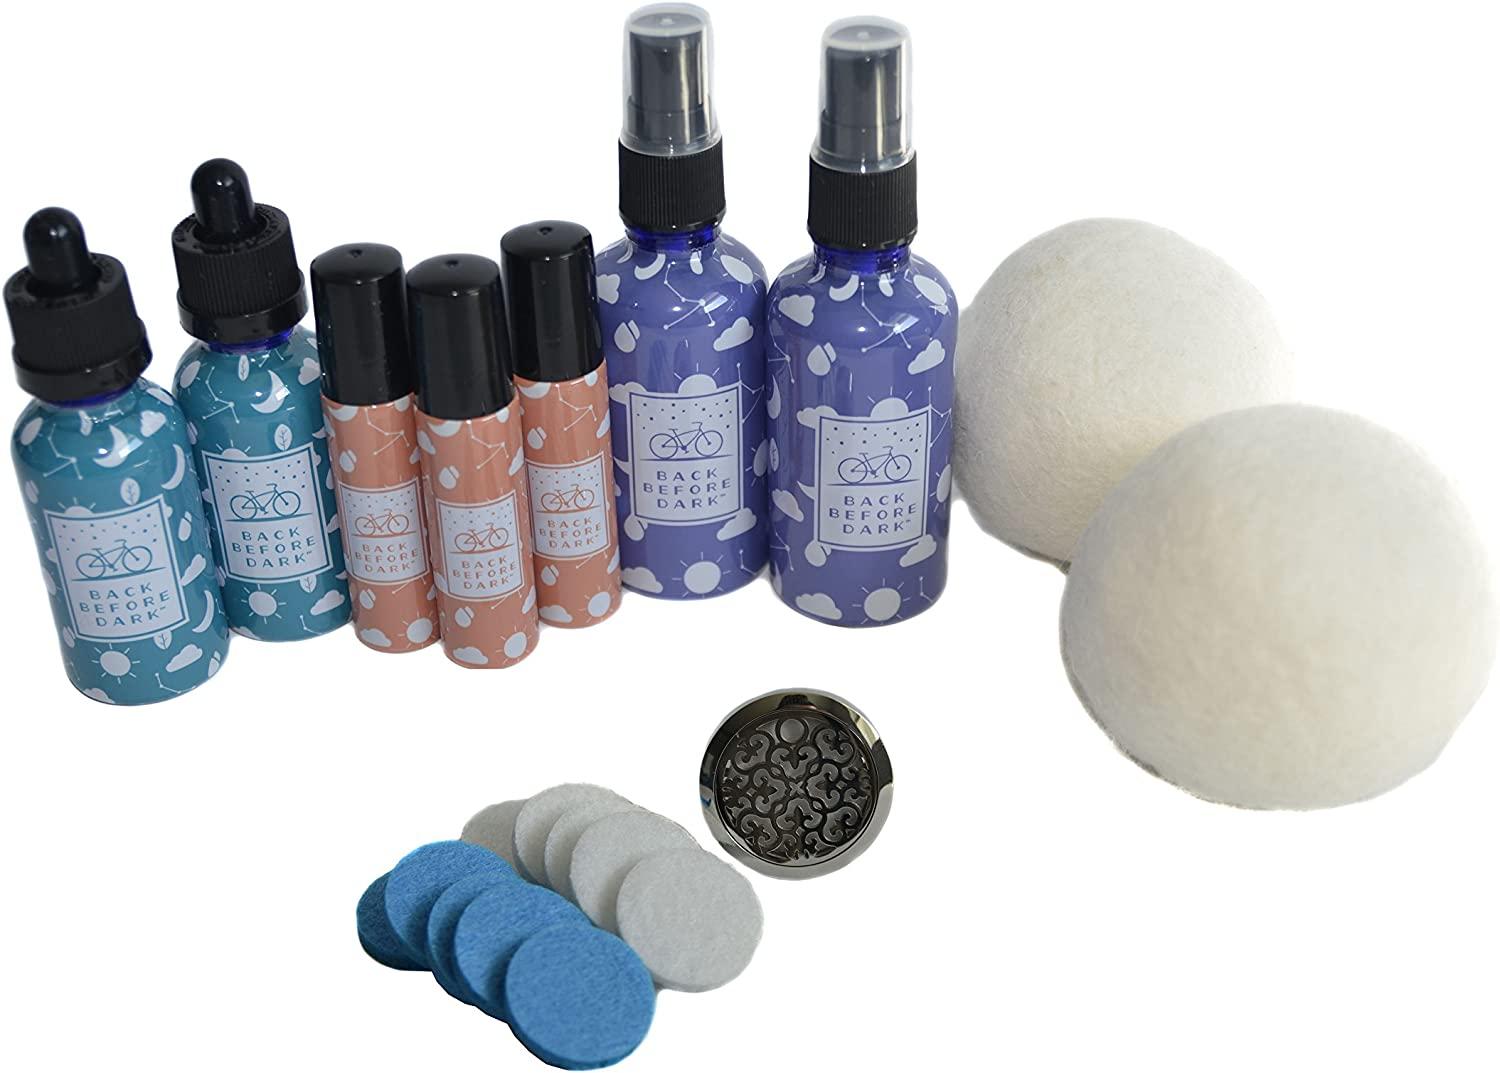 Back Before Dark Essential Oil Accessories Starter Kit – Essential Oil Roller Bottles – Glass spray bottles – Glass dropper bottles – Wool dryer balls – Car diffuser